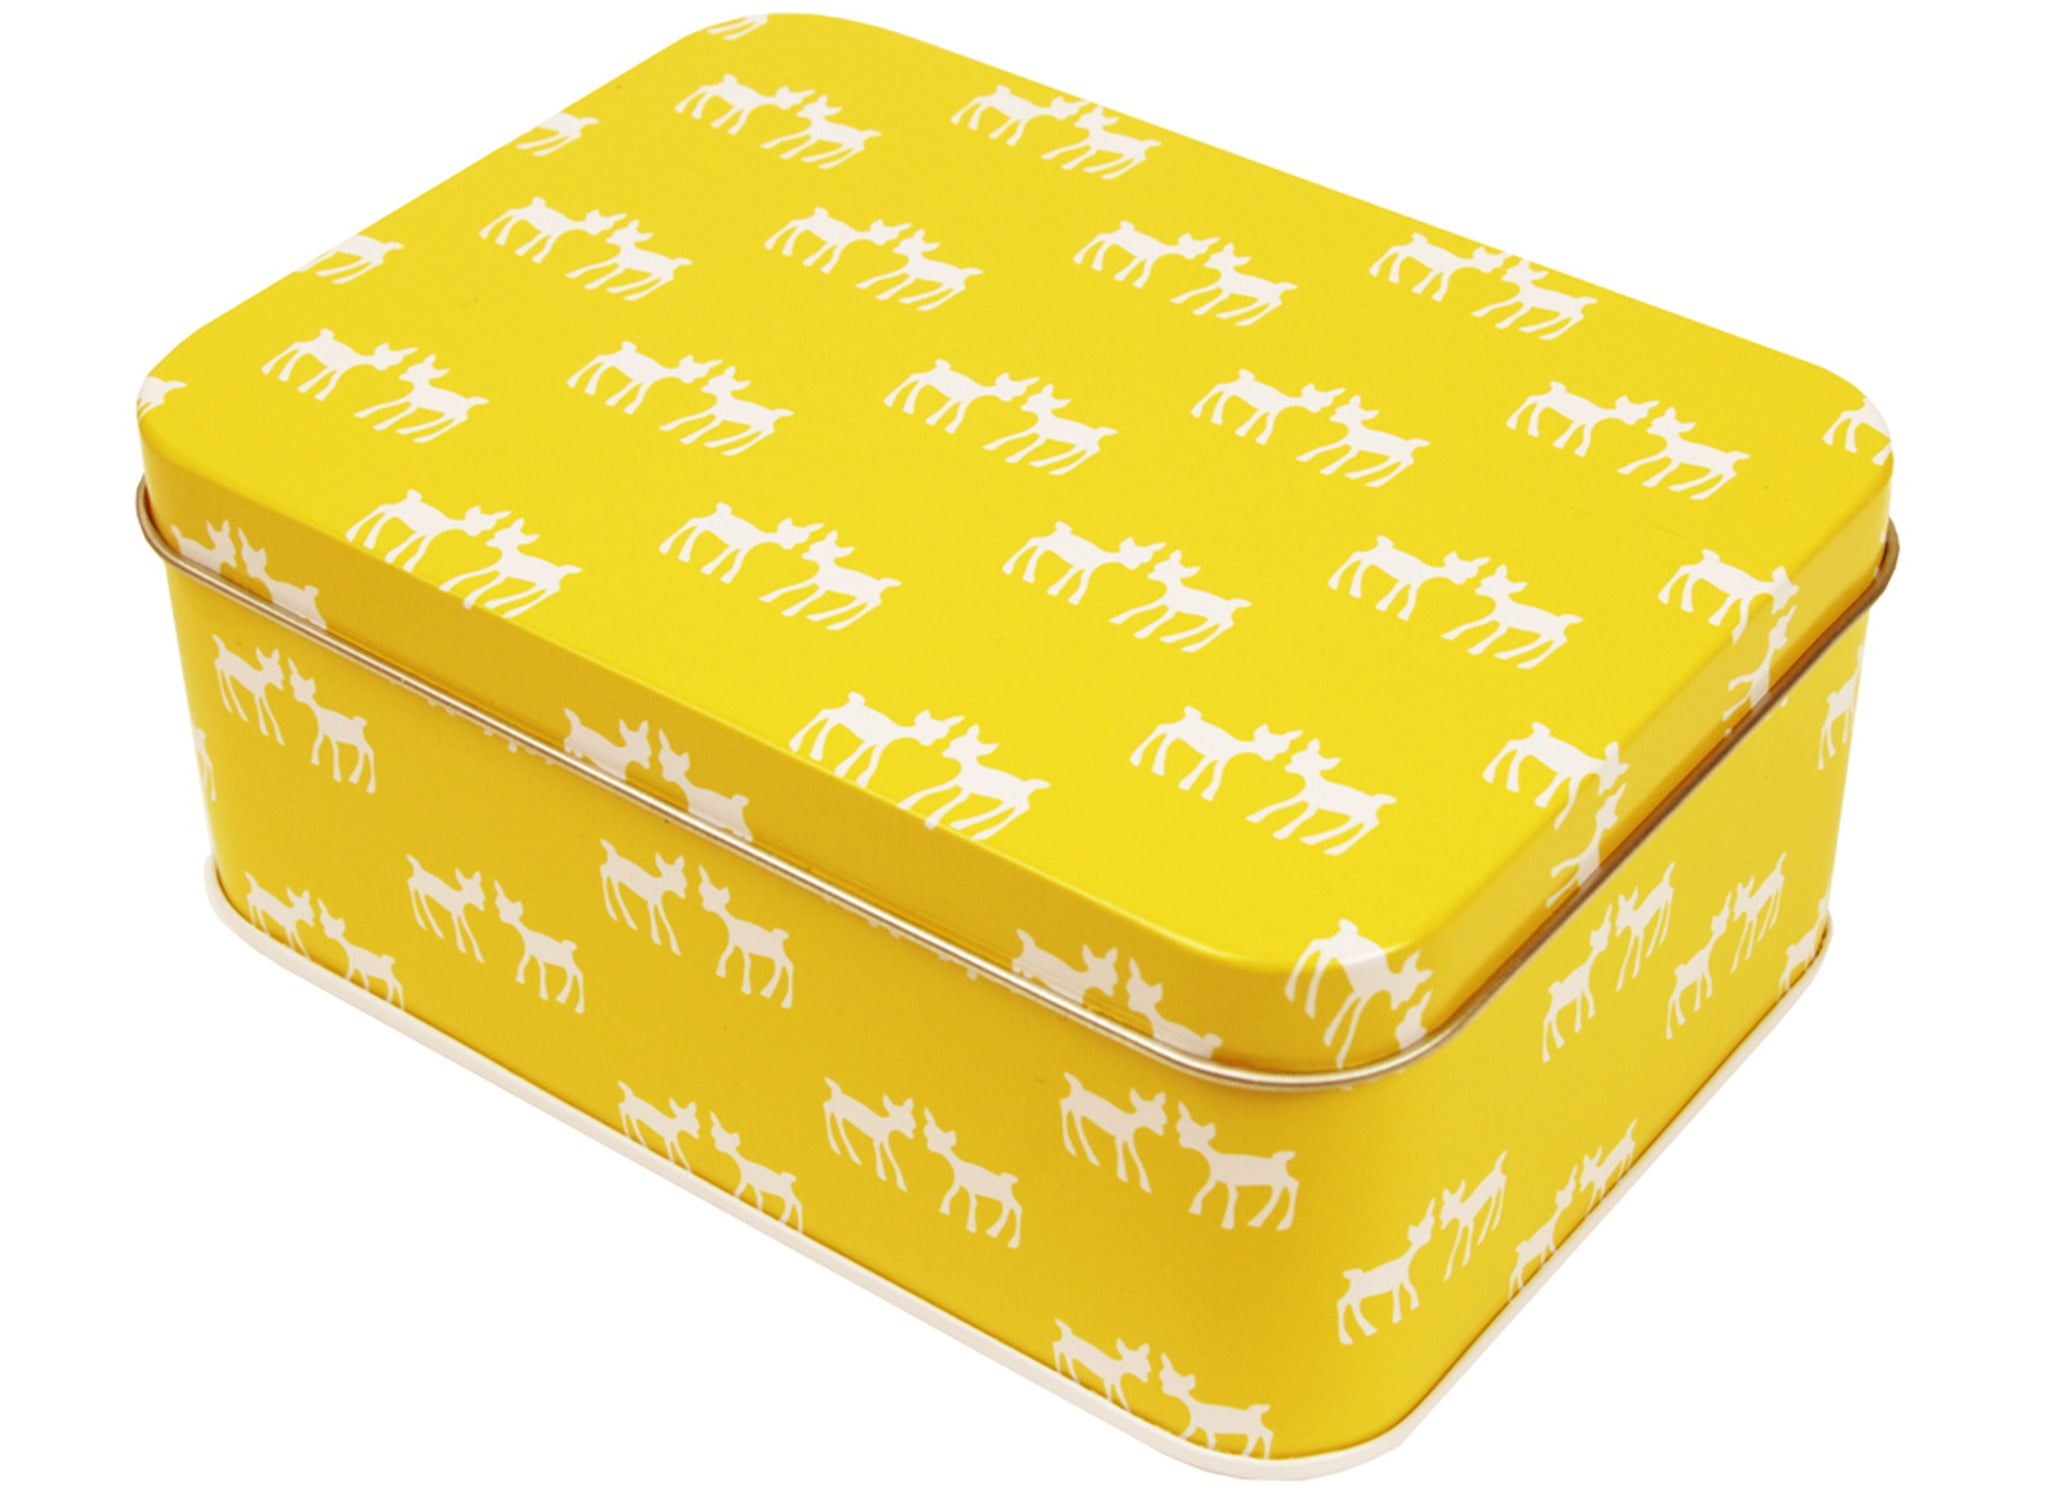 Bring a bit of Scandi style to your lunch box with a food-safe coated metal  box from Norwegian design company Blafre. We love this yellow deer pattern,  ... 8bfe3b5e2e